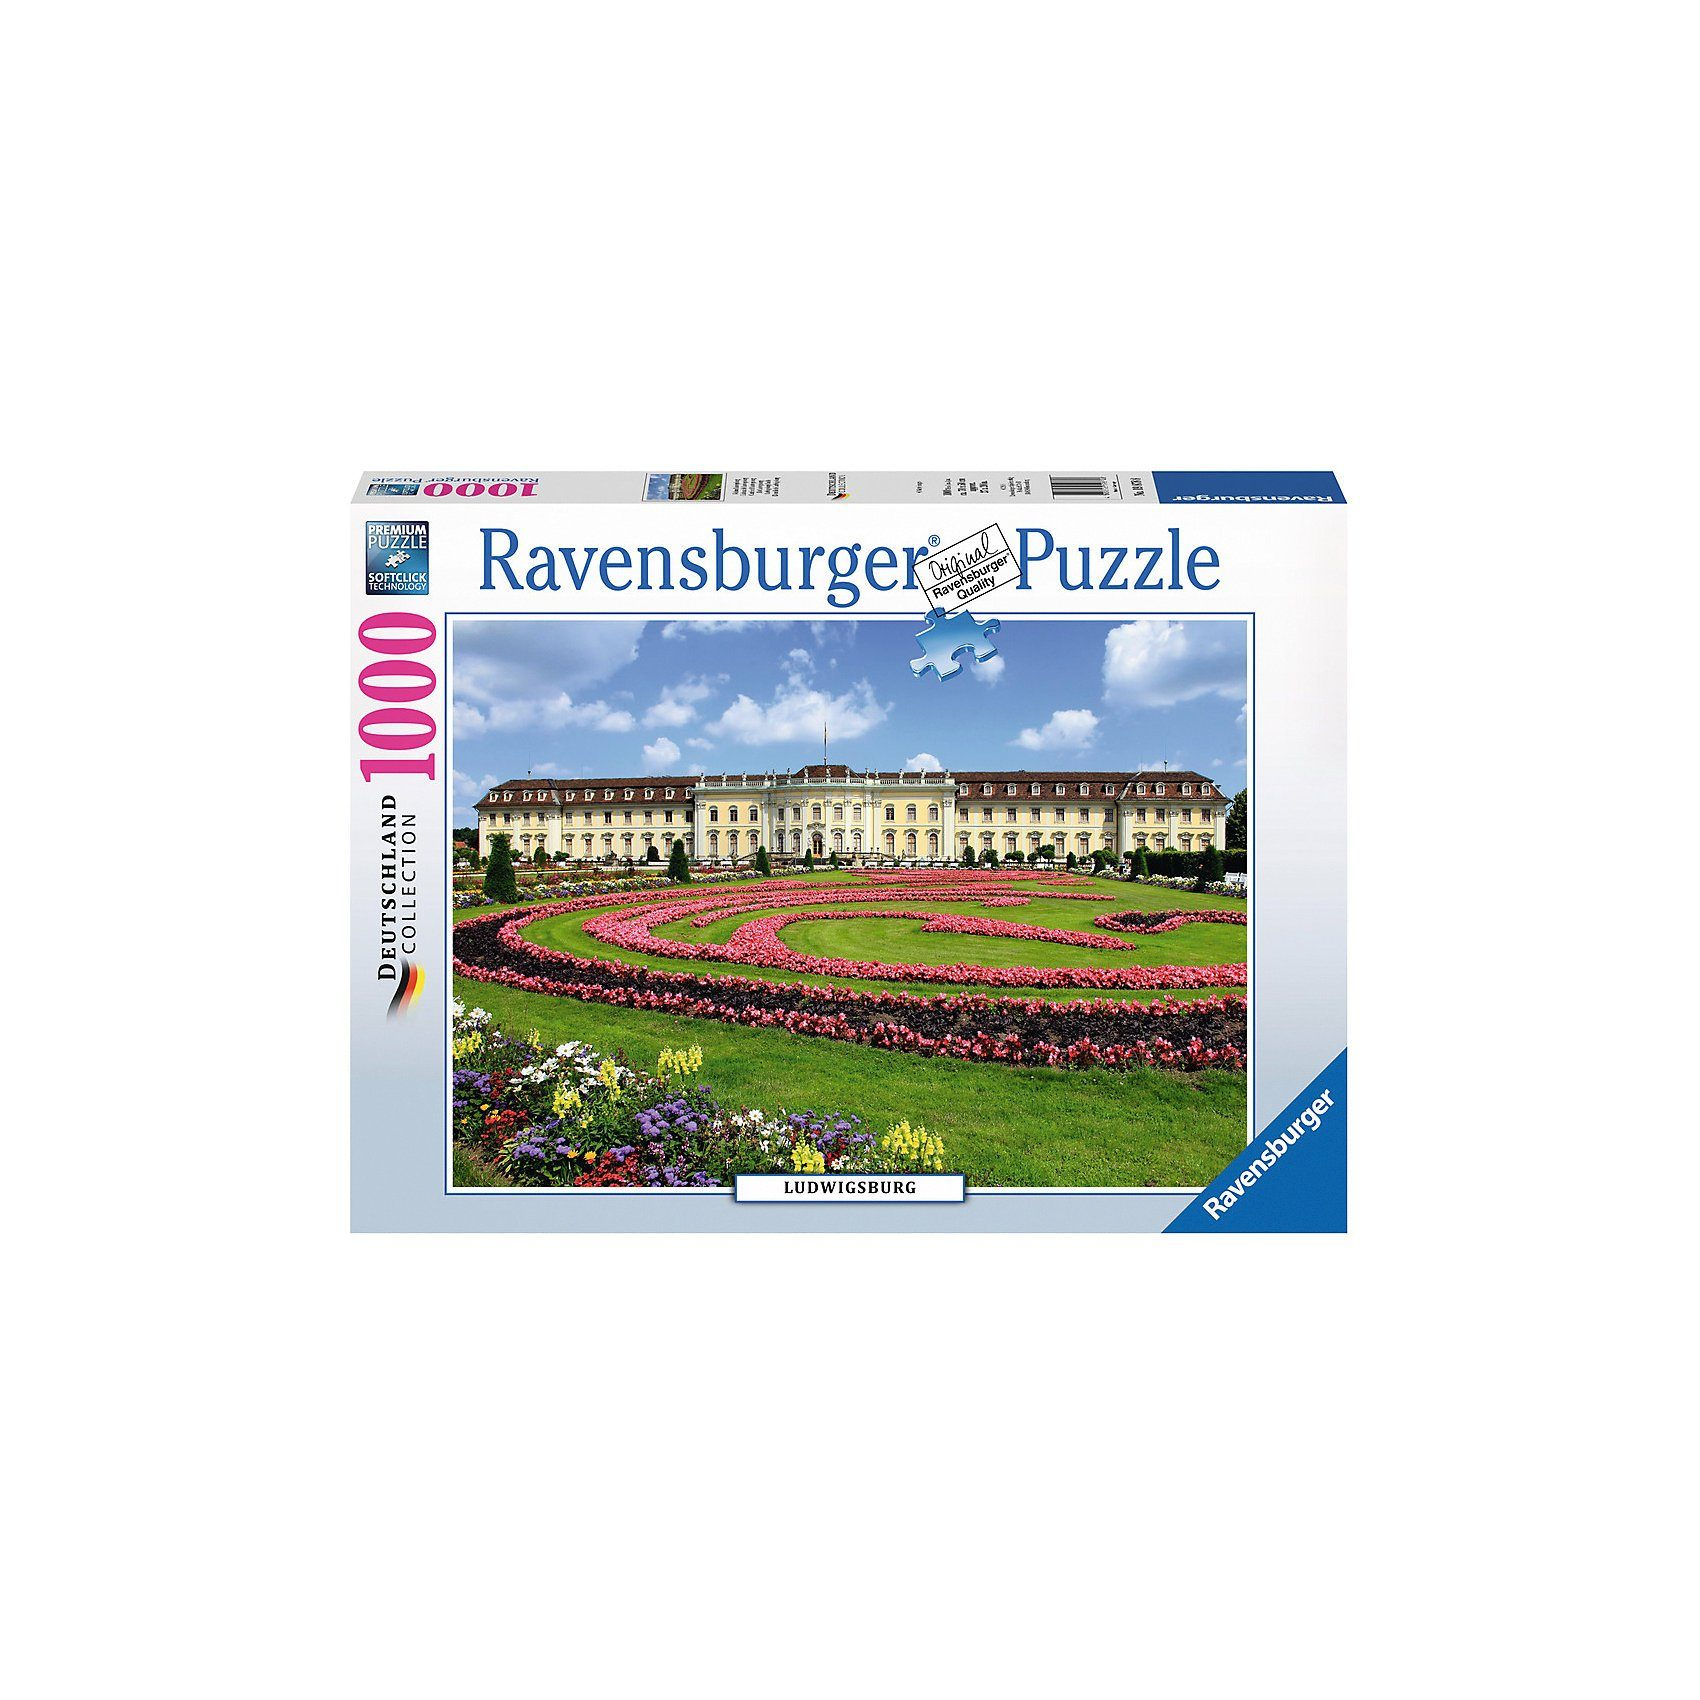 Ravensburger Puzzle 1000 Teile, 70x50 cm, Schloss Ludwigsburg